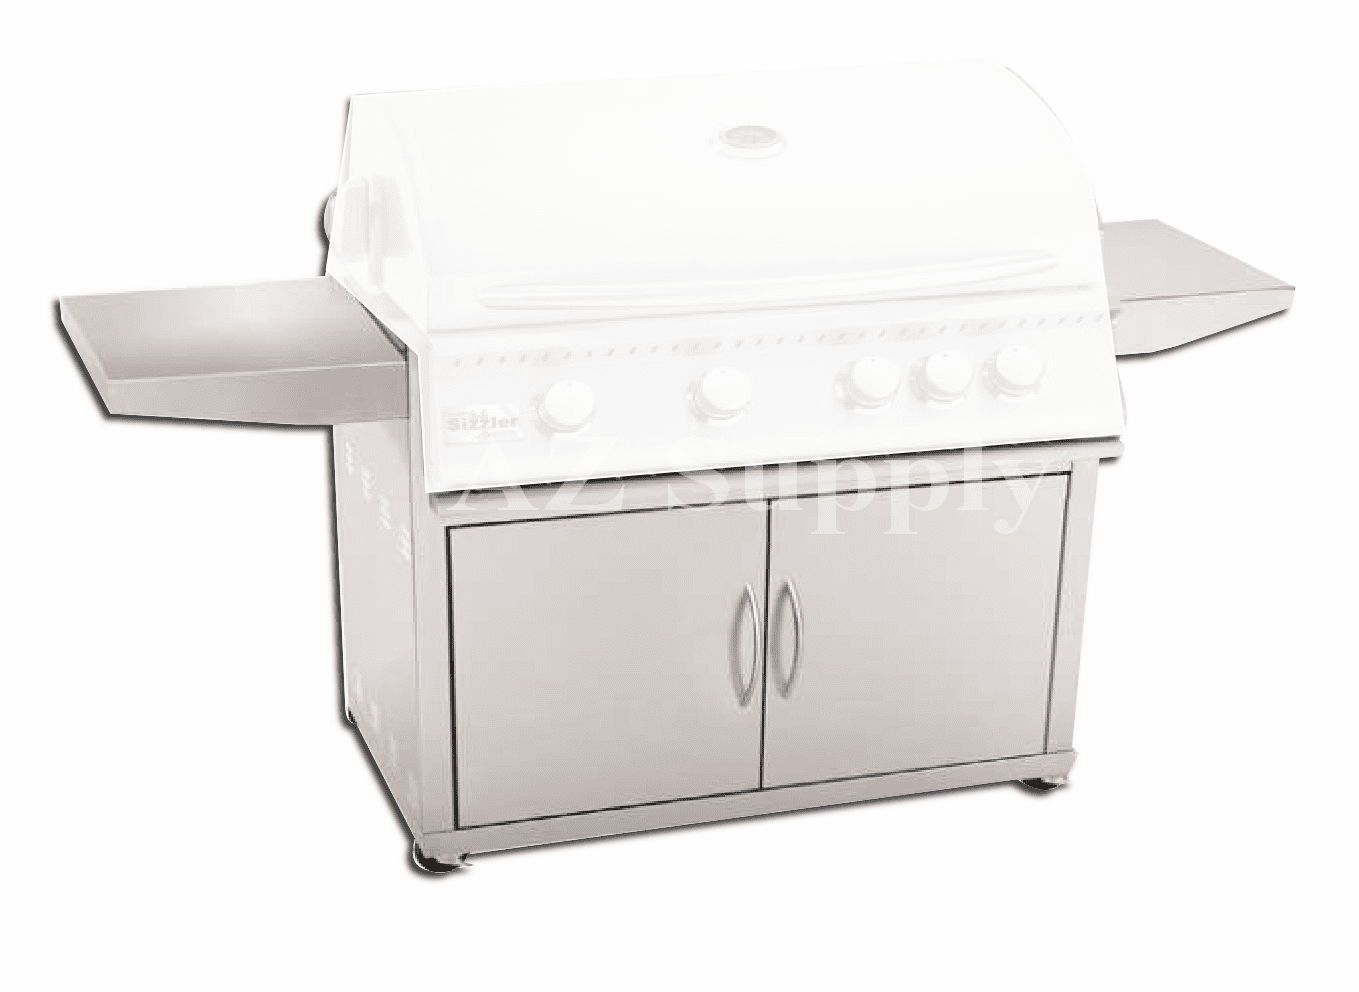 Summerset Grill carts Stainless Steel